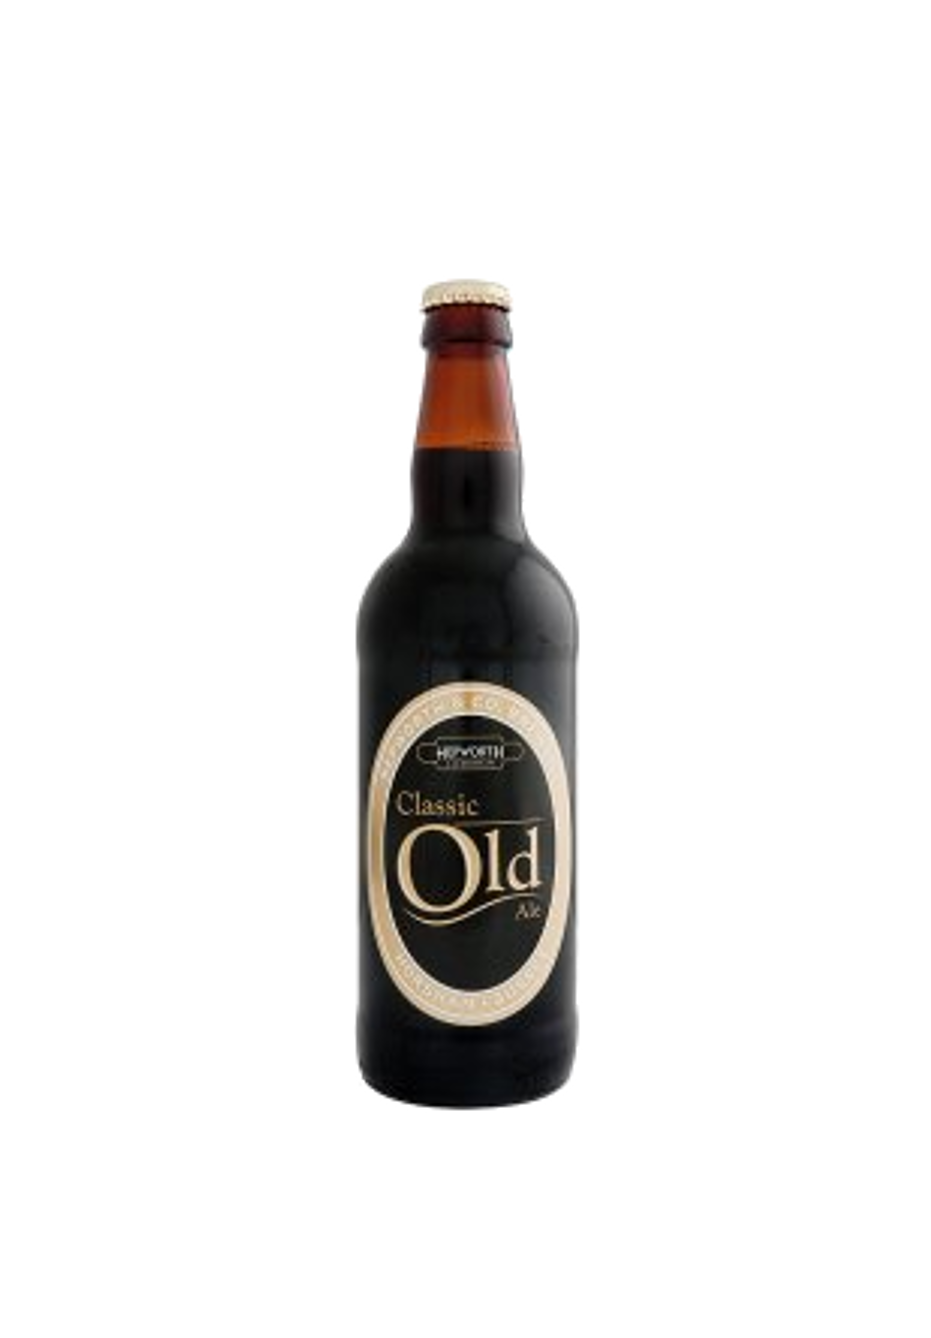 Hepworth & Co Classic Old Ale (500ml bottle)